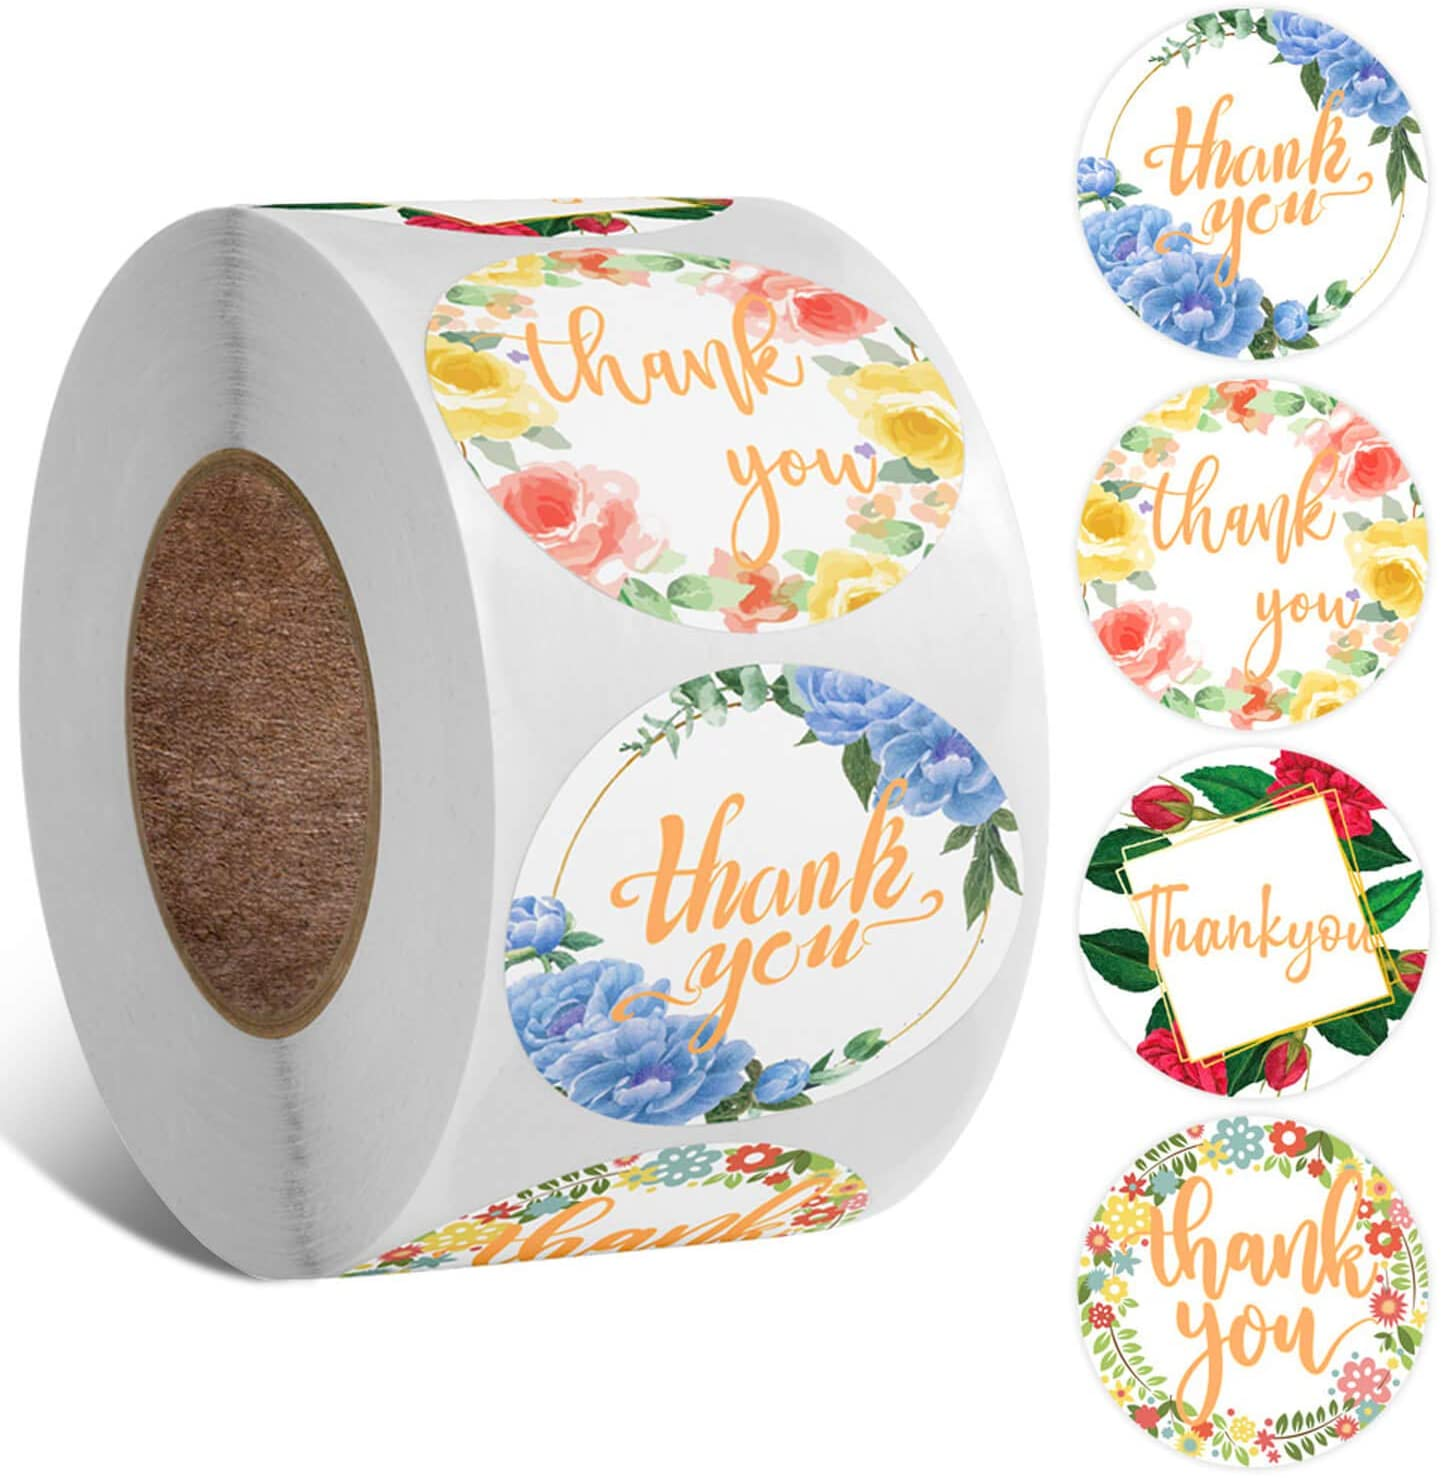 Thank You Stickers Roll 1.5 Inch, UVANKAUP Thank You Stickers with Flower Design Perfect for Wedding, Graduation, Business, Birthday, Baby Shower, Family Celebrations(500pcs)